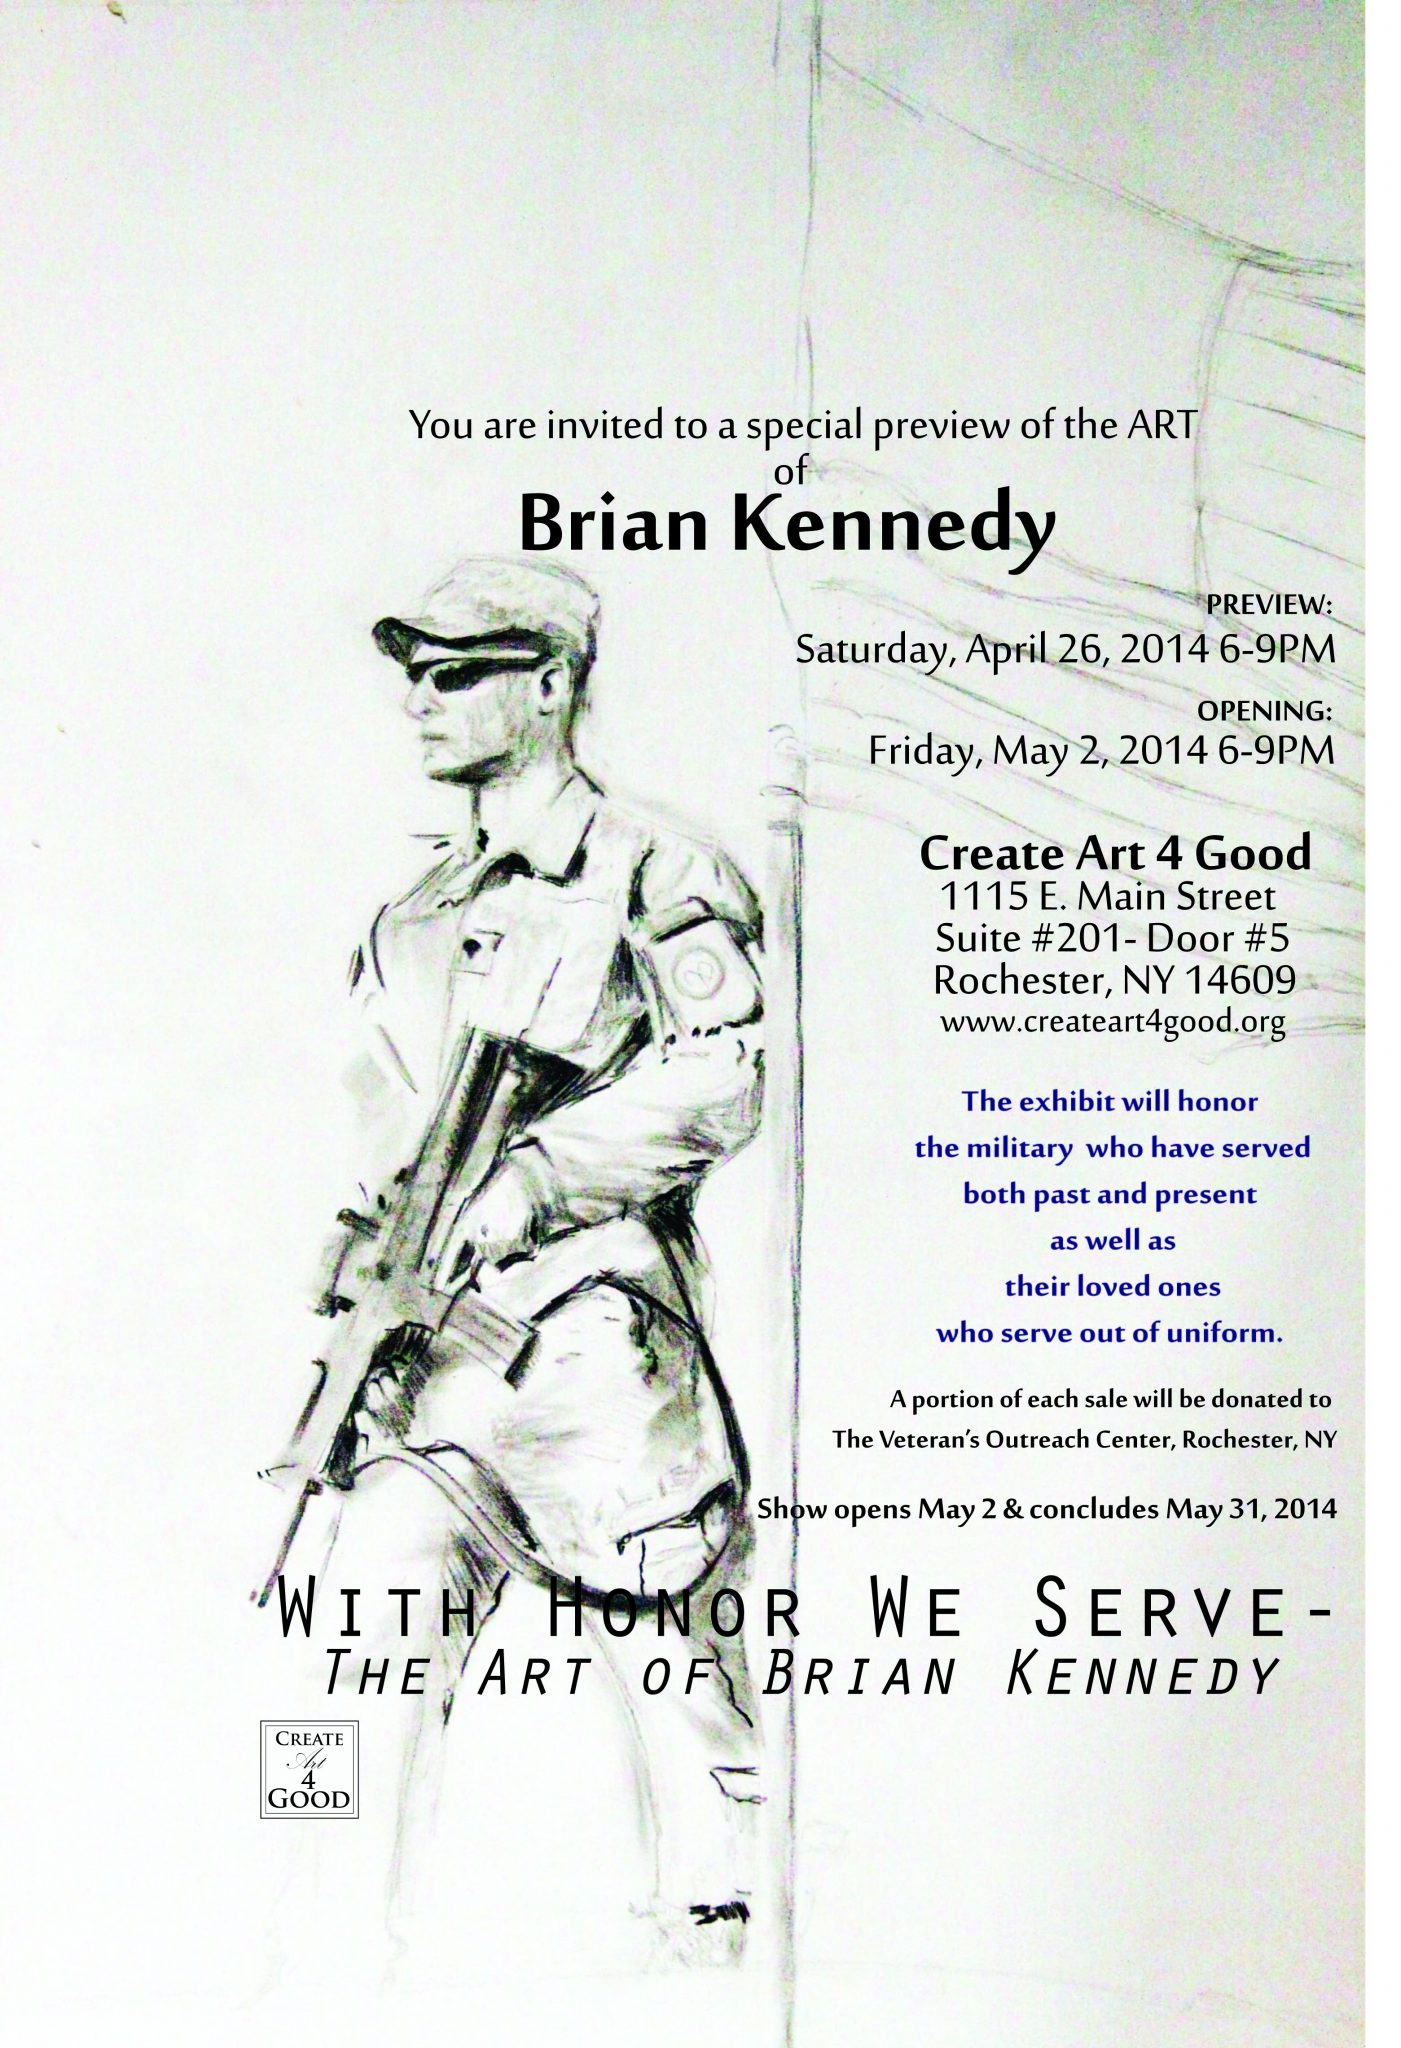 With Honor We Serve Invitation